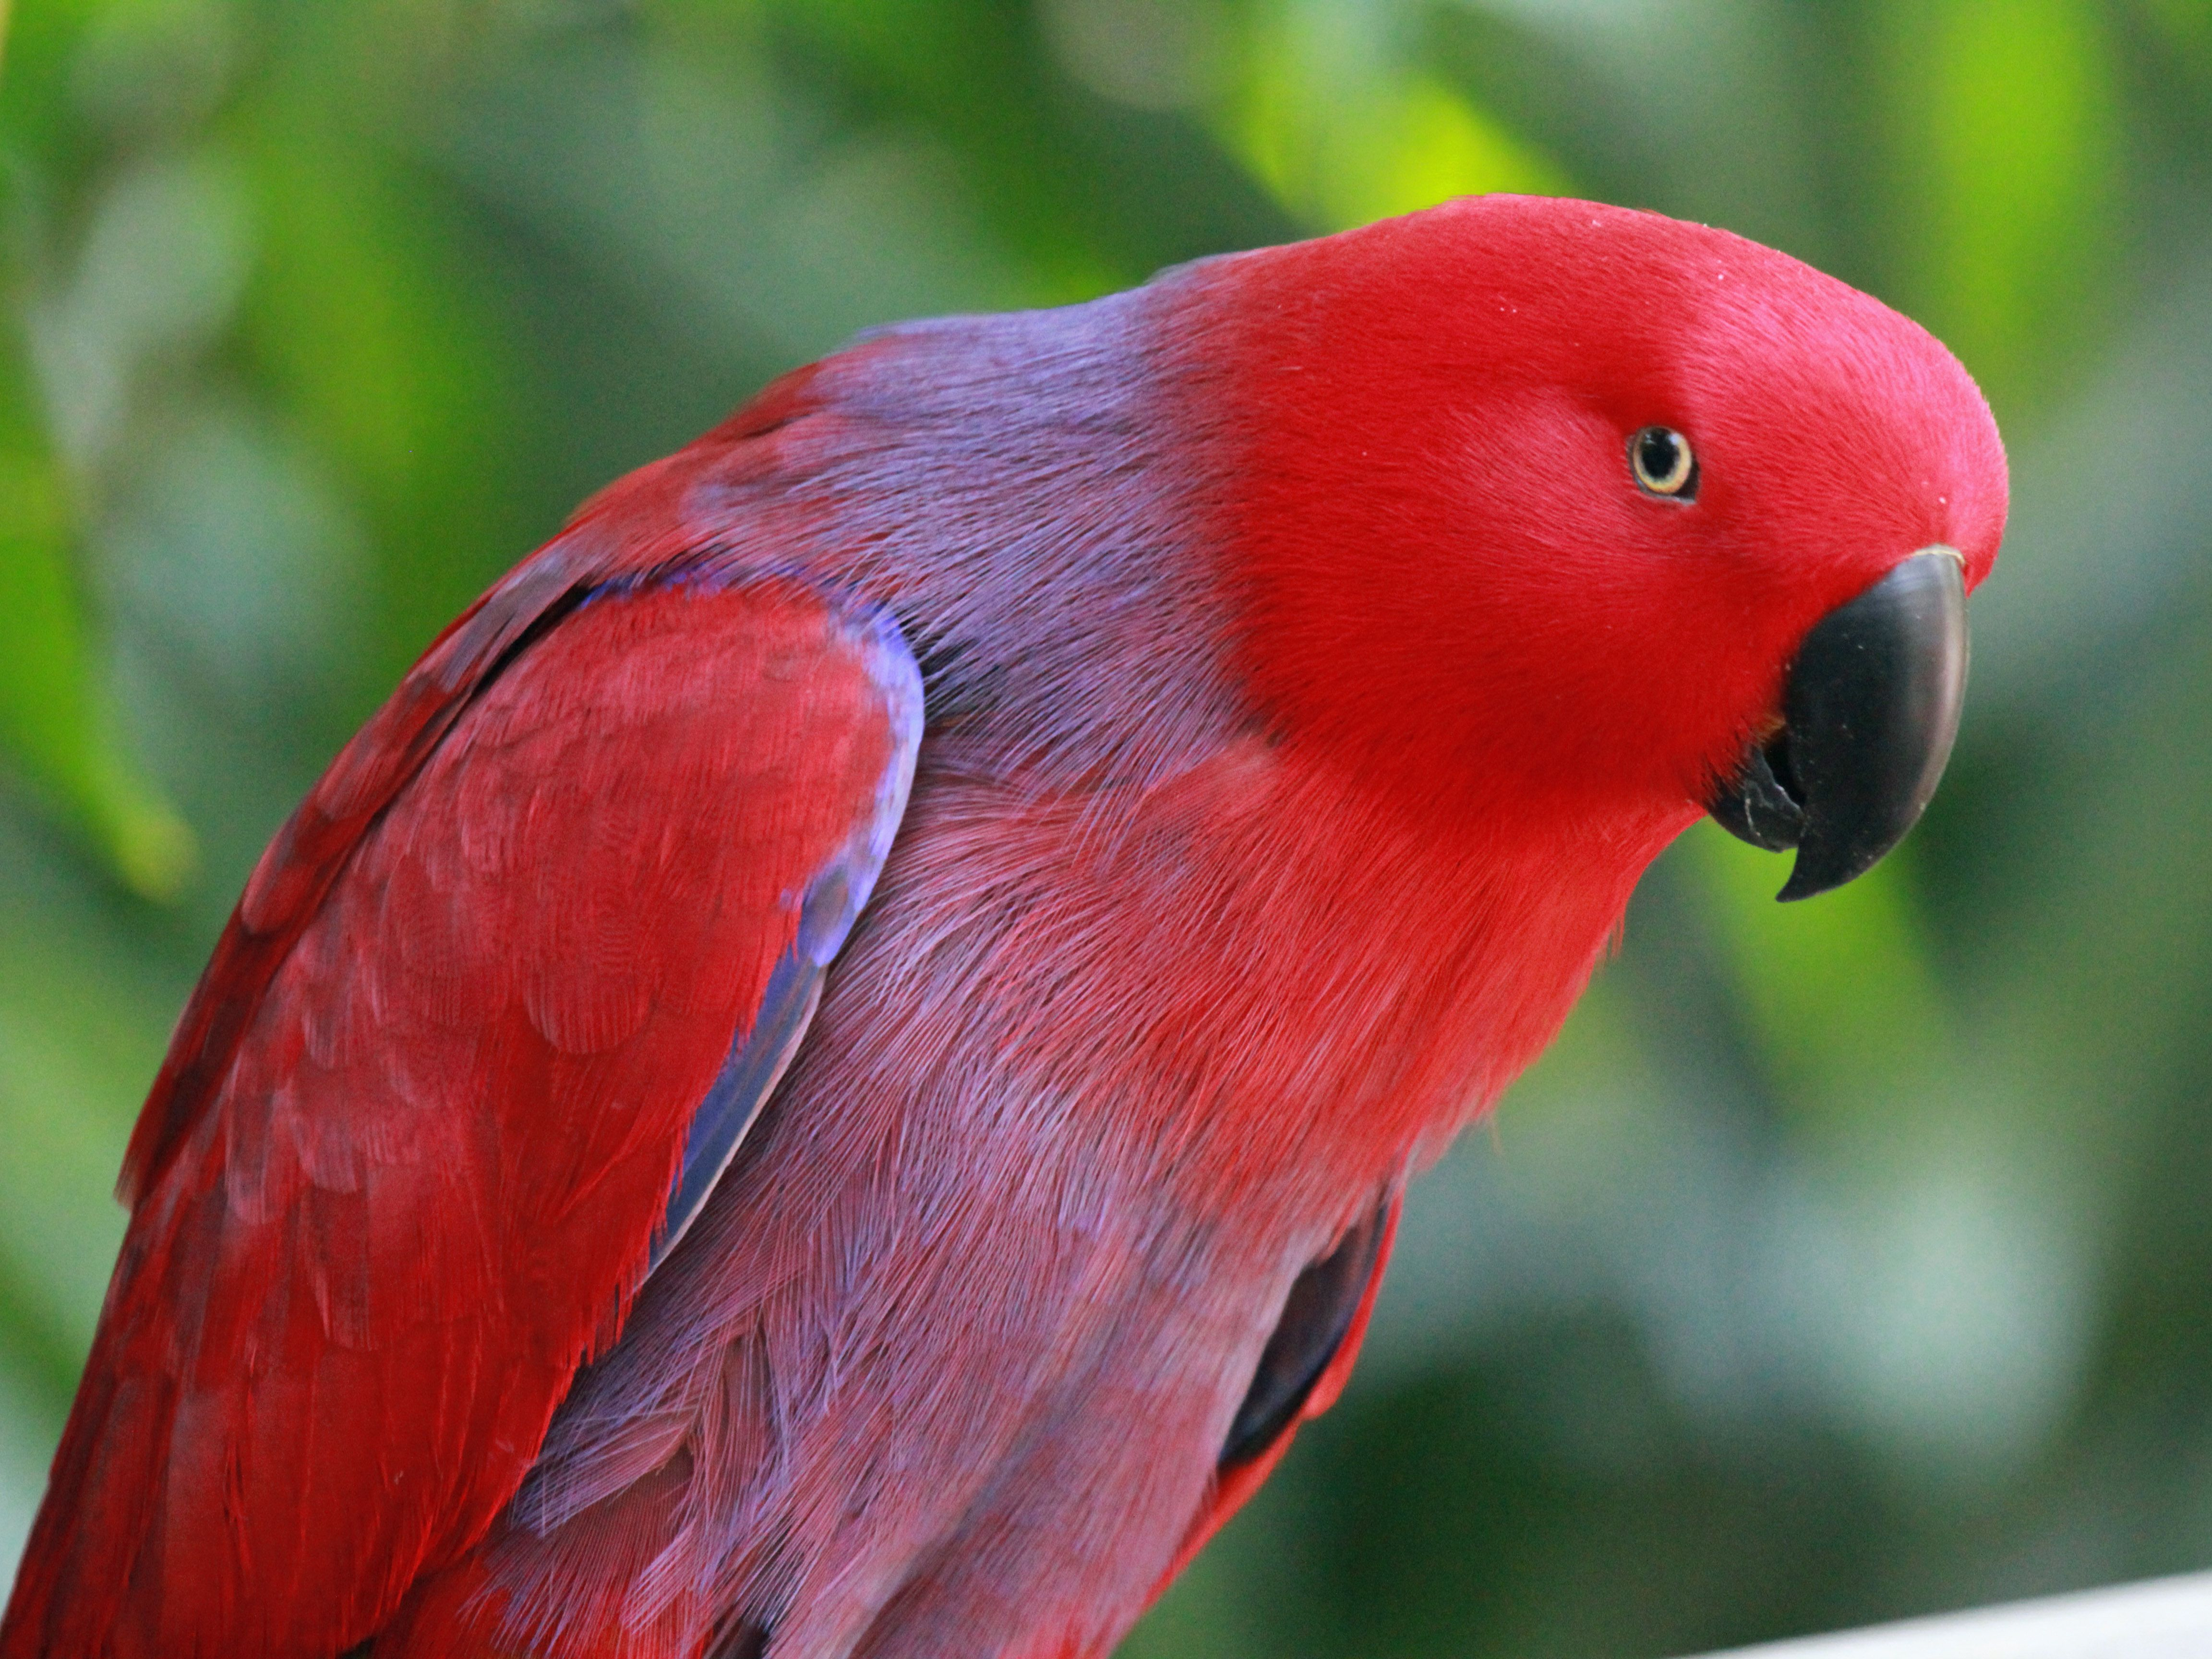 Red eclectus parrot hd wallpaper animals wallpapers pinterest red eclectus parrot hd wallpaper voltagebd Images